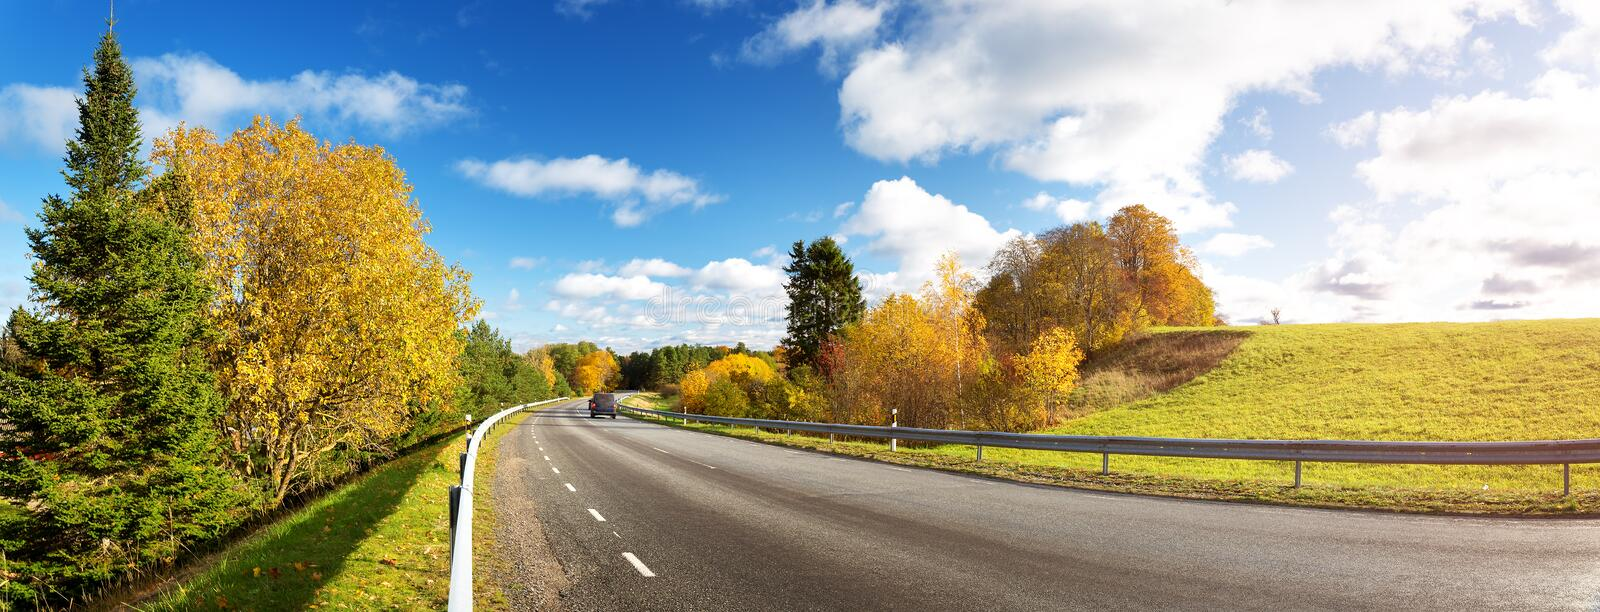 Road at falls on sunny day. Highway in autumn royalty free stock image